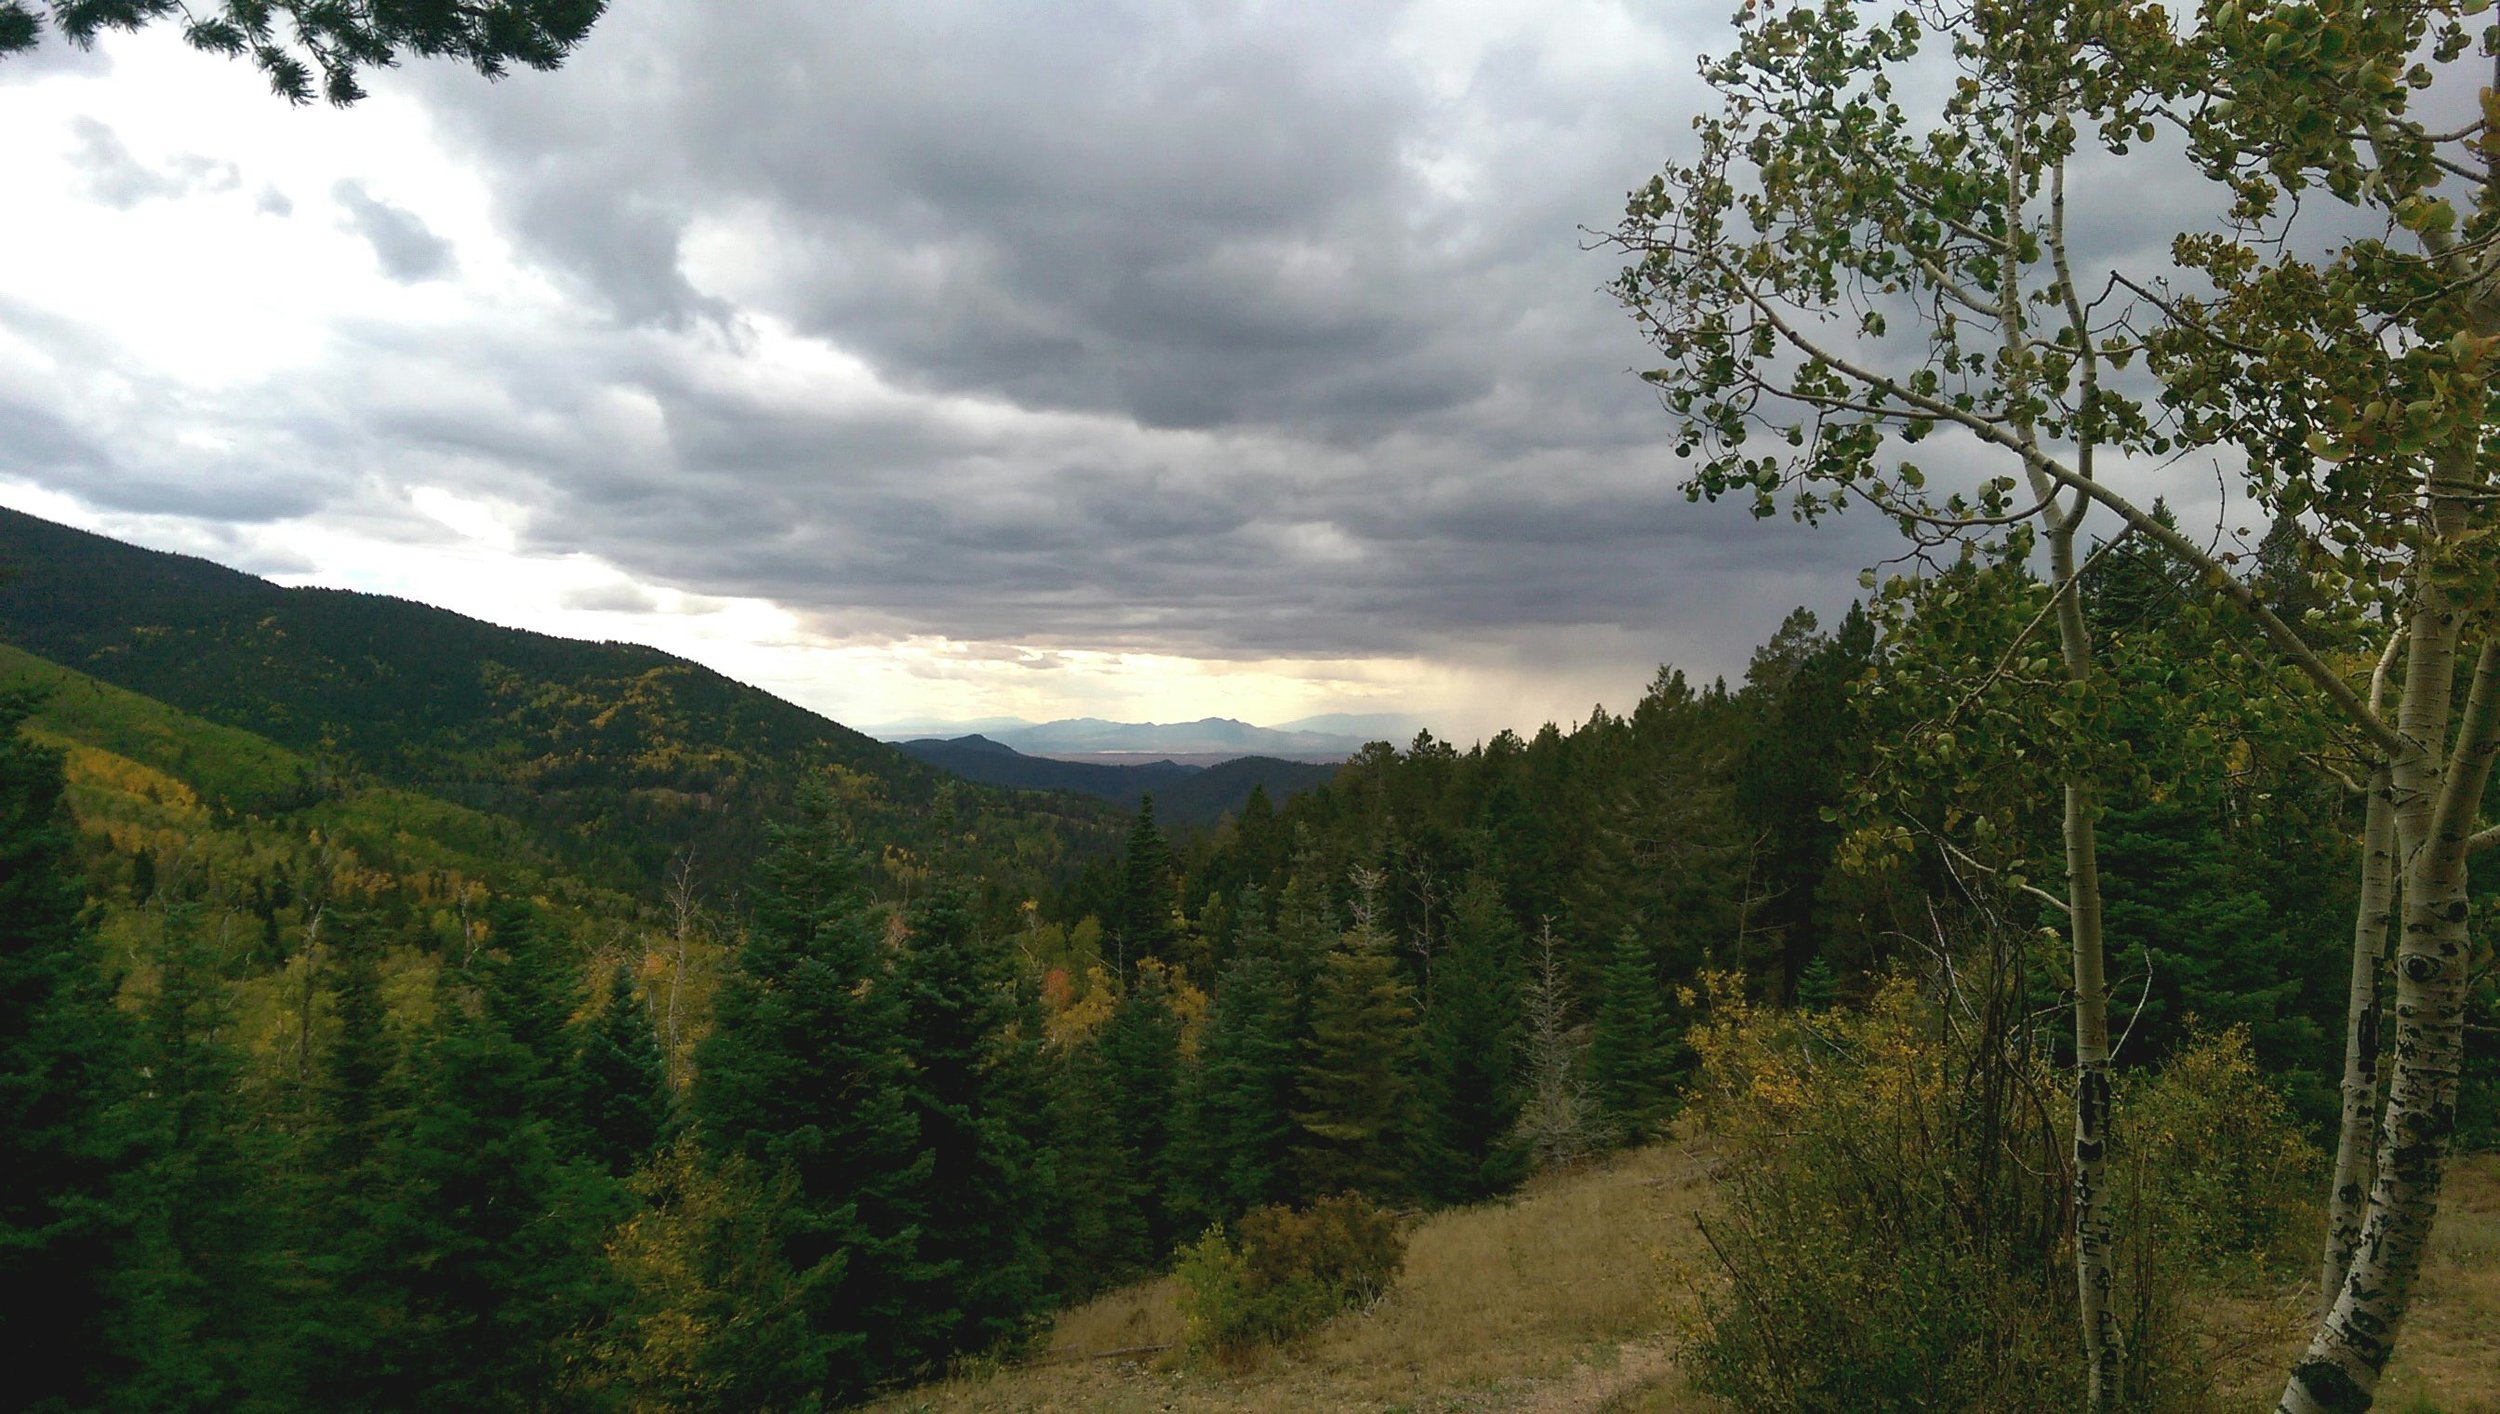 A view near where I was painting on the Santa Fe mountain